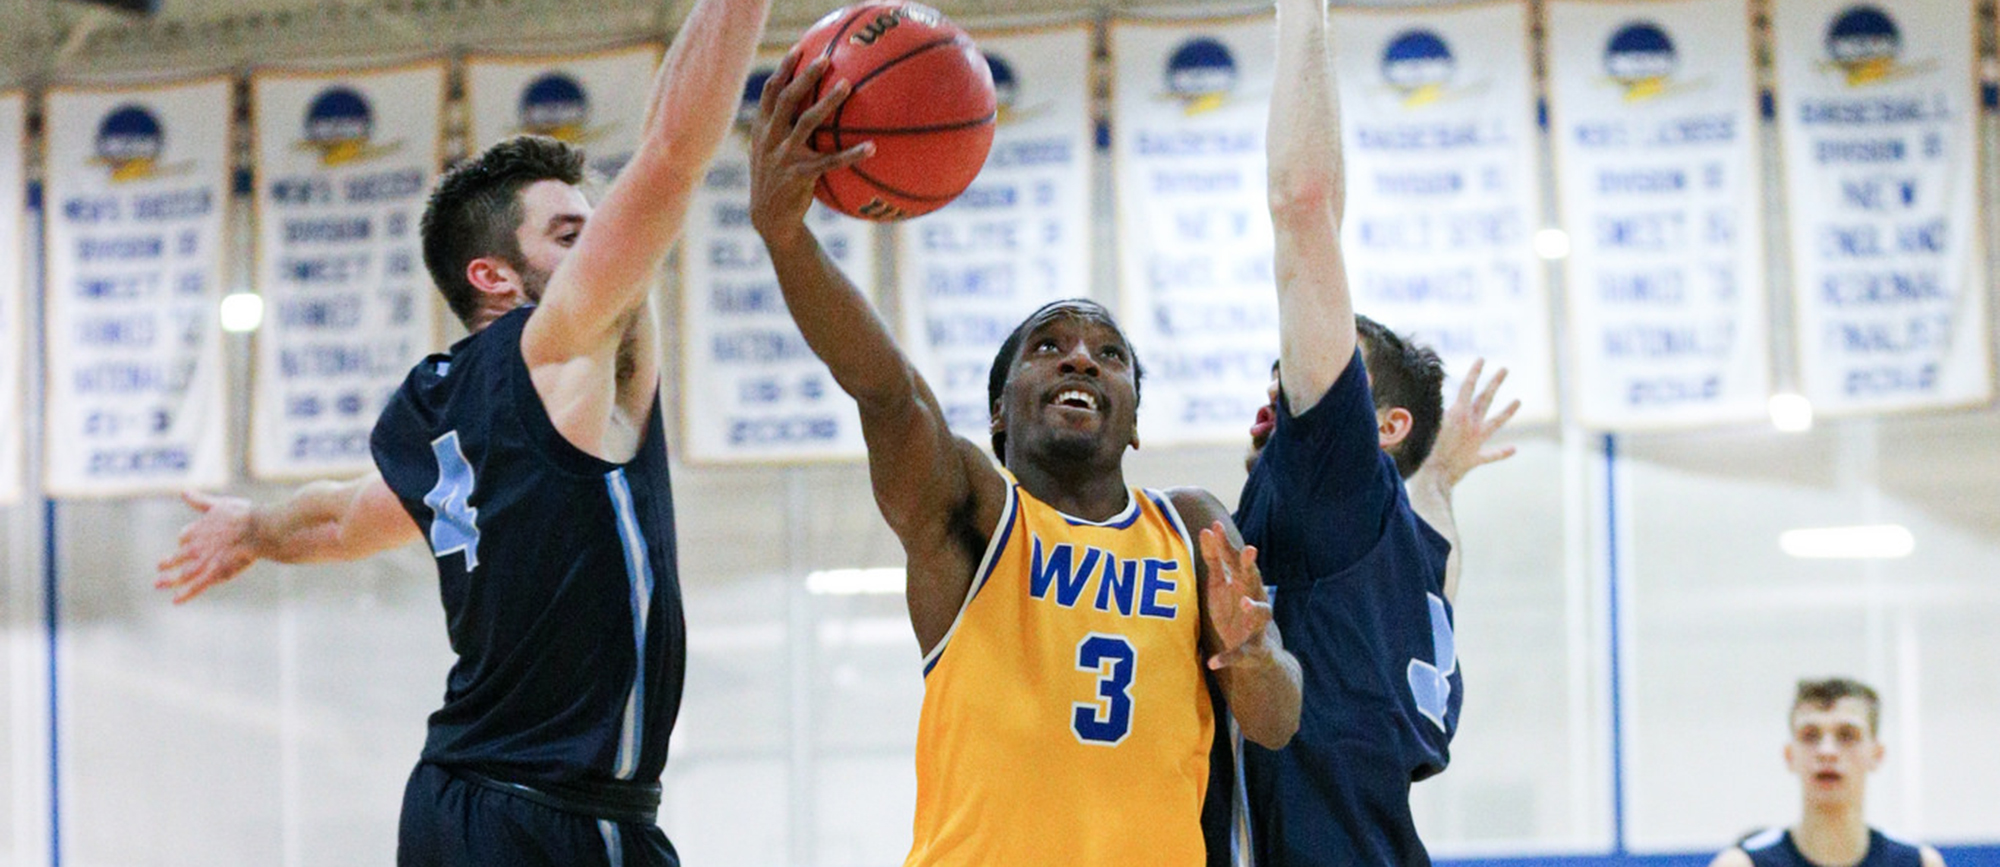 Mikey Pettway scored a team-high 16 points in Western New England's 77-70 loss to Salve Regina on Thursday. (Photo by Chris Marion)